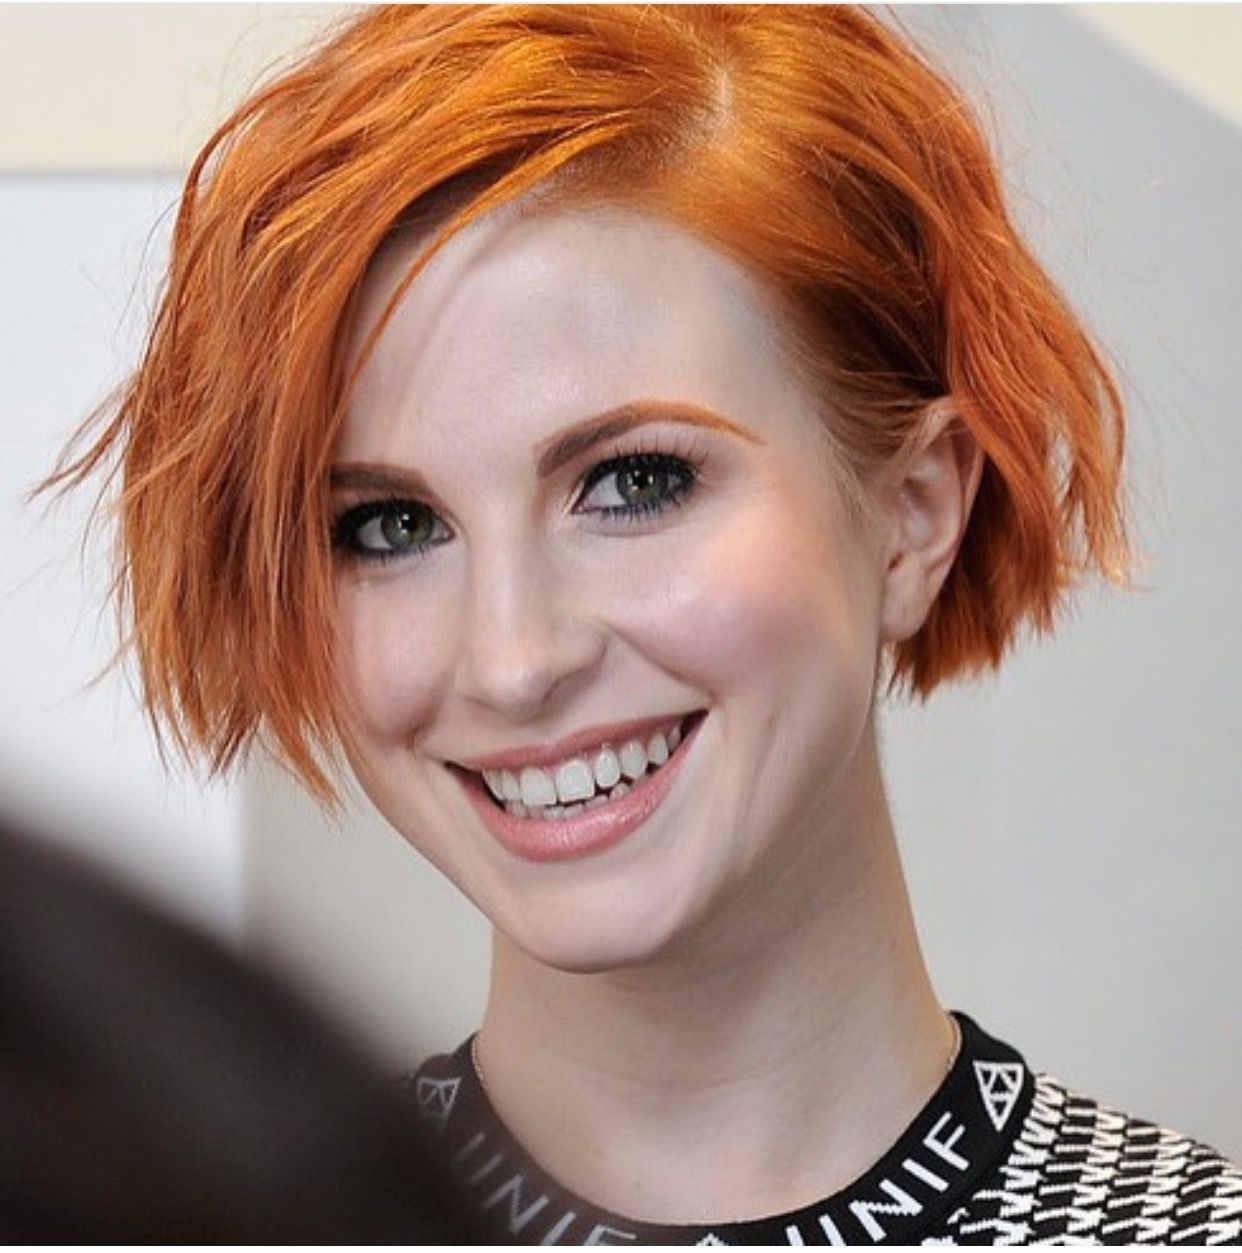 Pin By Janelly Dkdk On Hayley Williams In 2018 Hair Short Hair